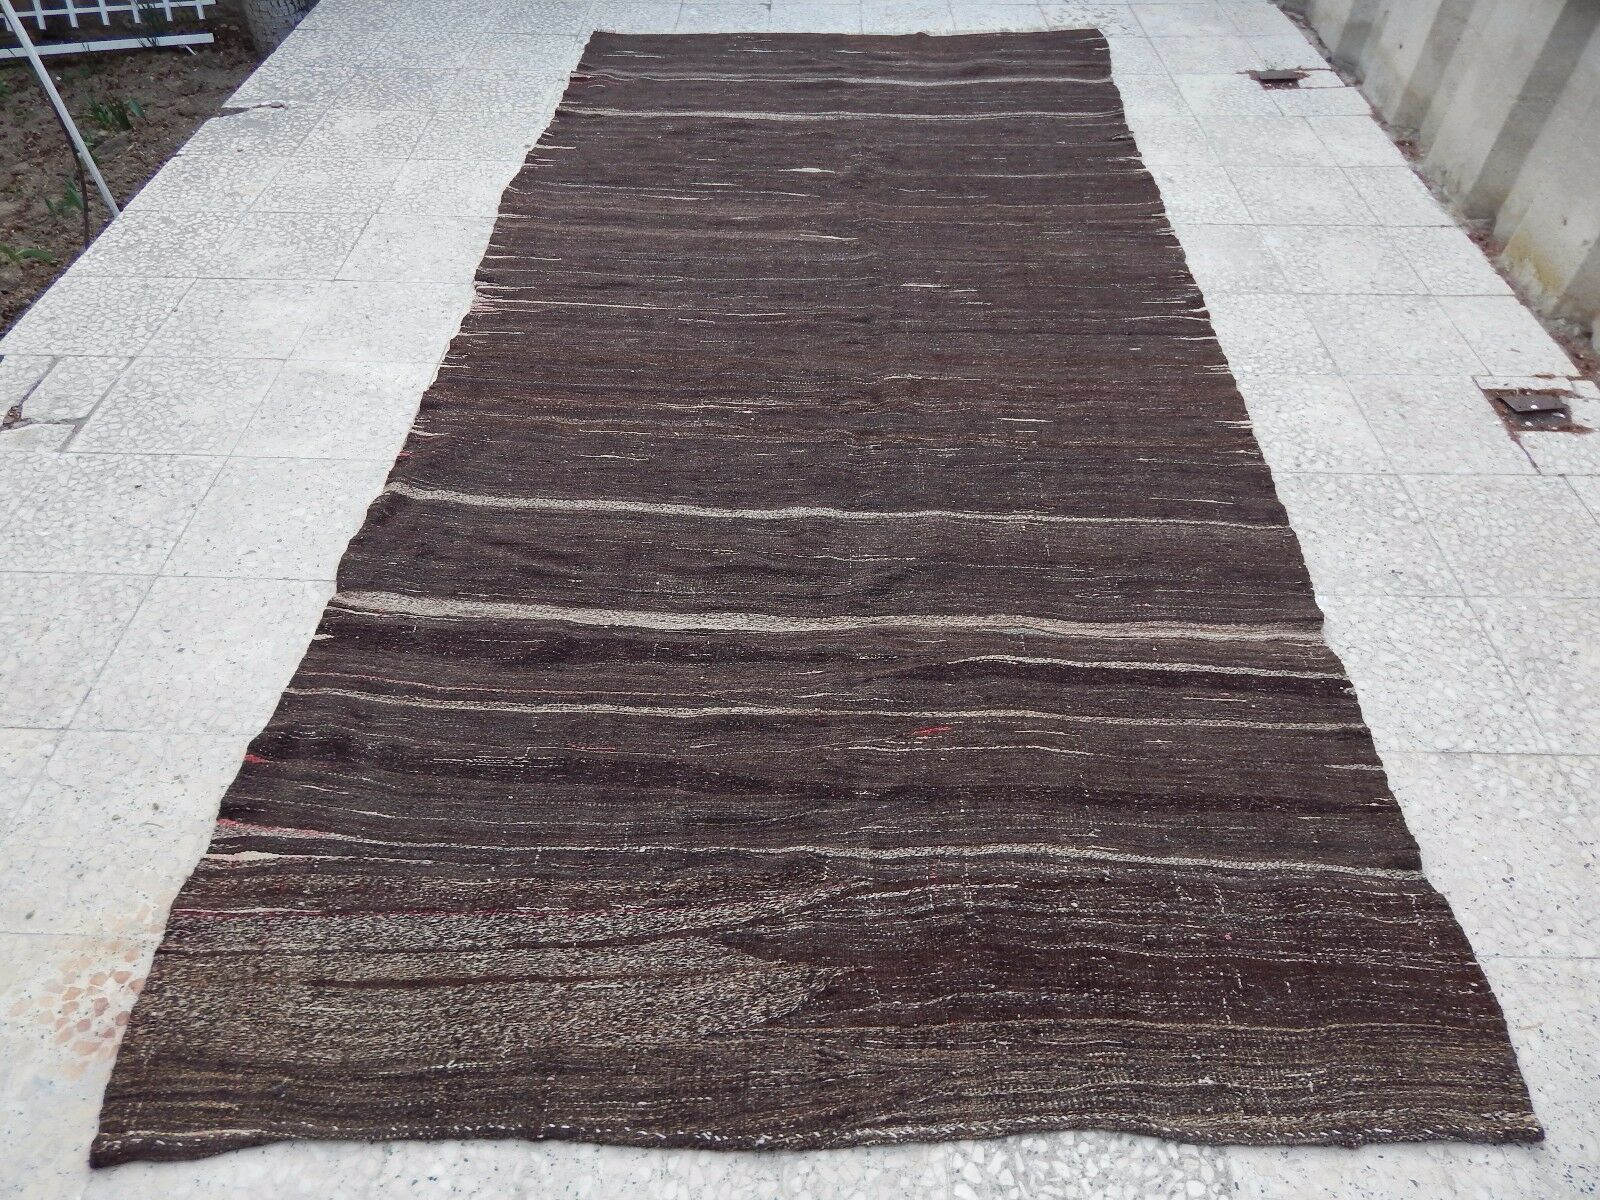 Mid Century Handwoven Natural Coloree Wide Goat Hair Kilim Rug Runner 5.2x10.5ft.